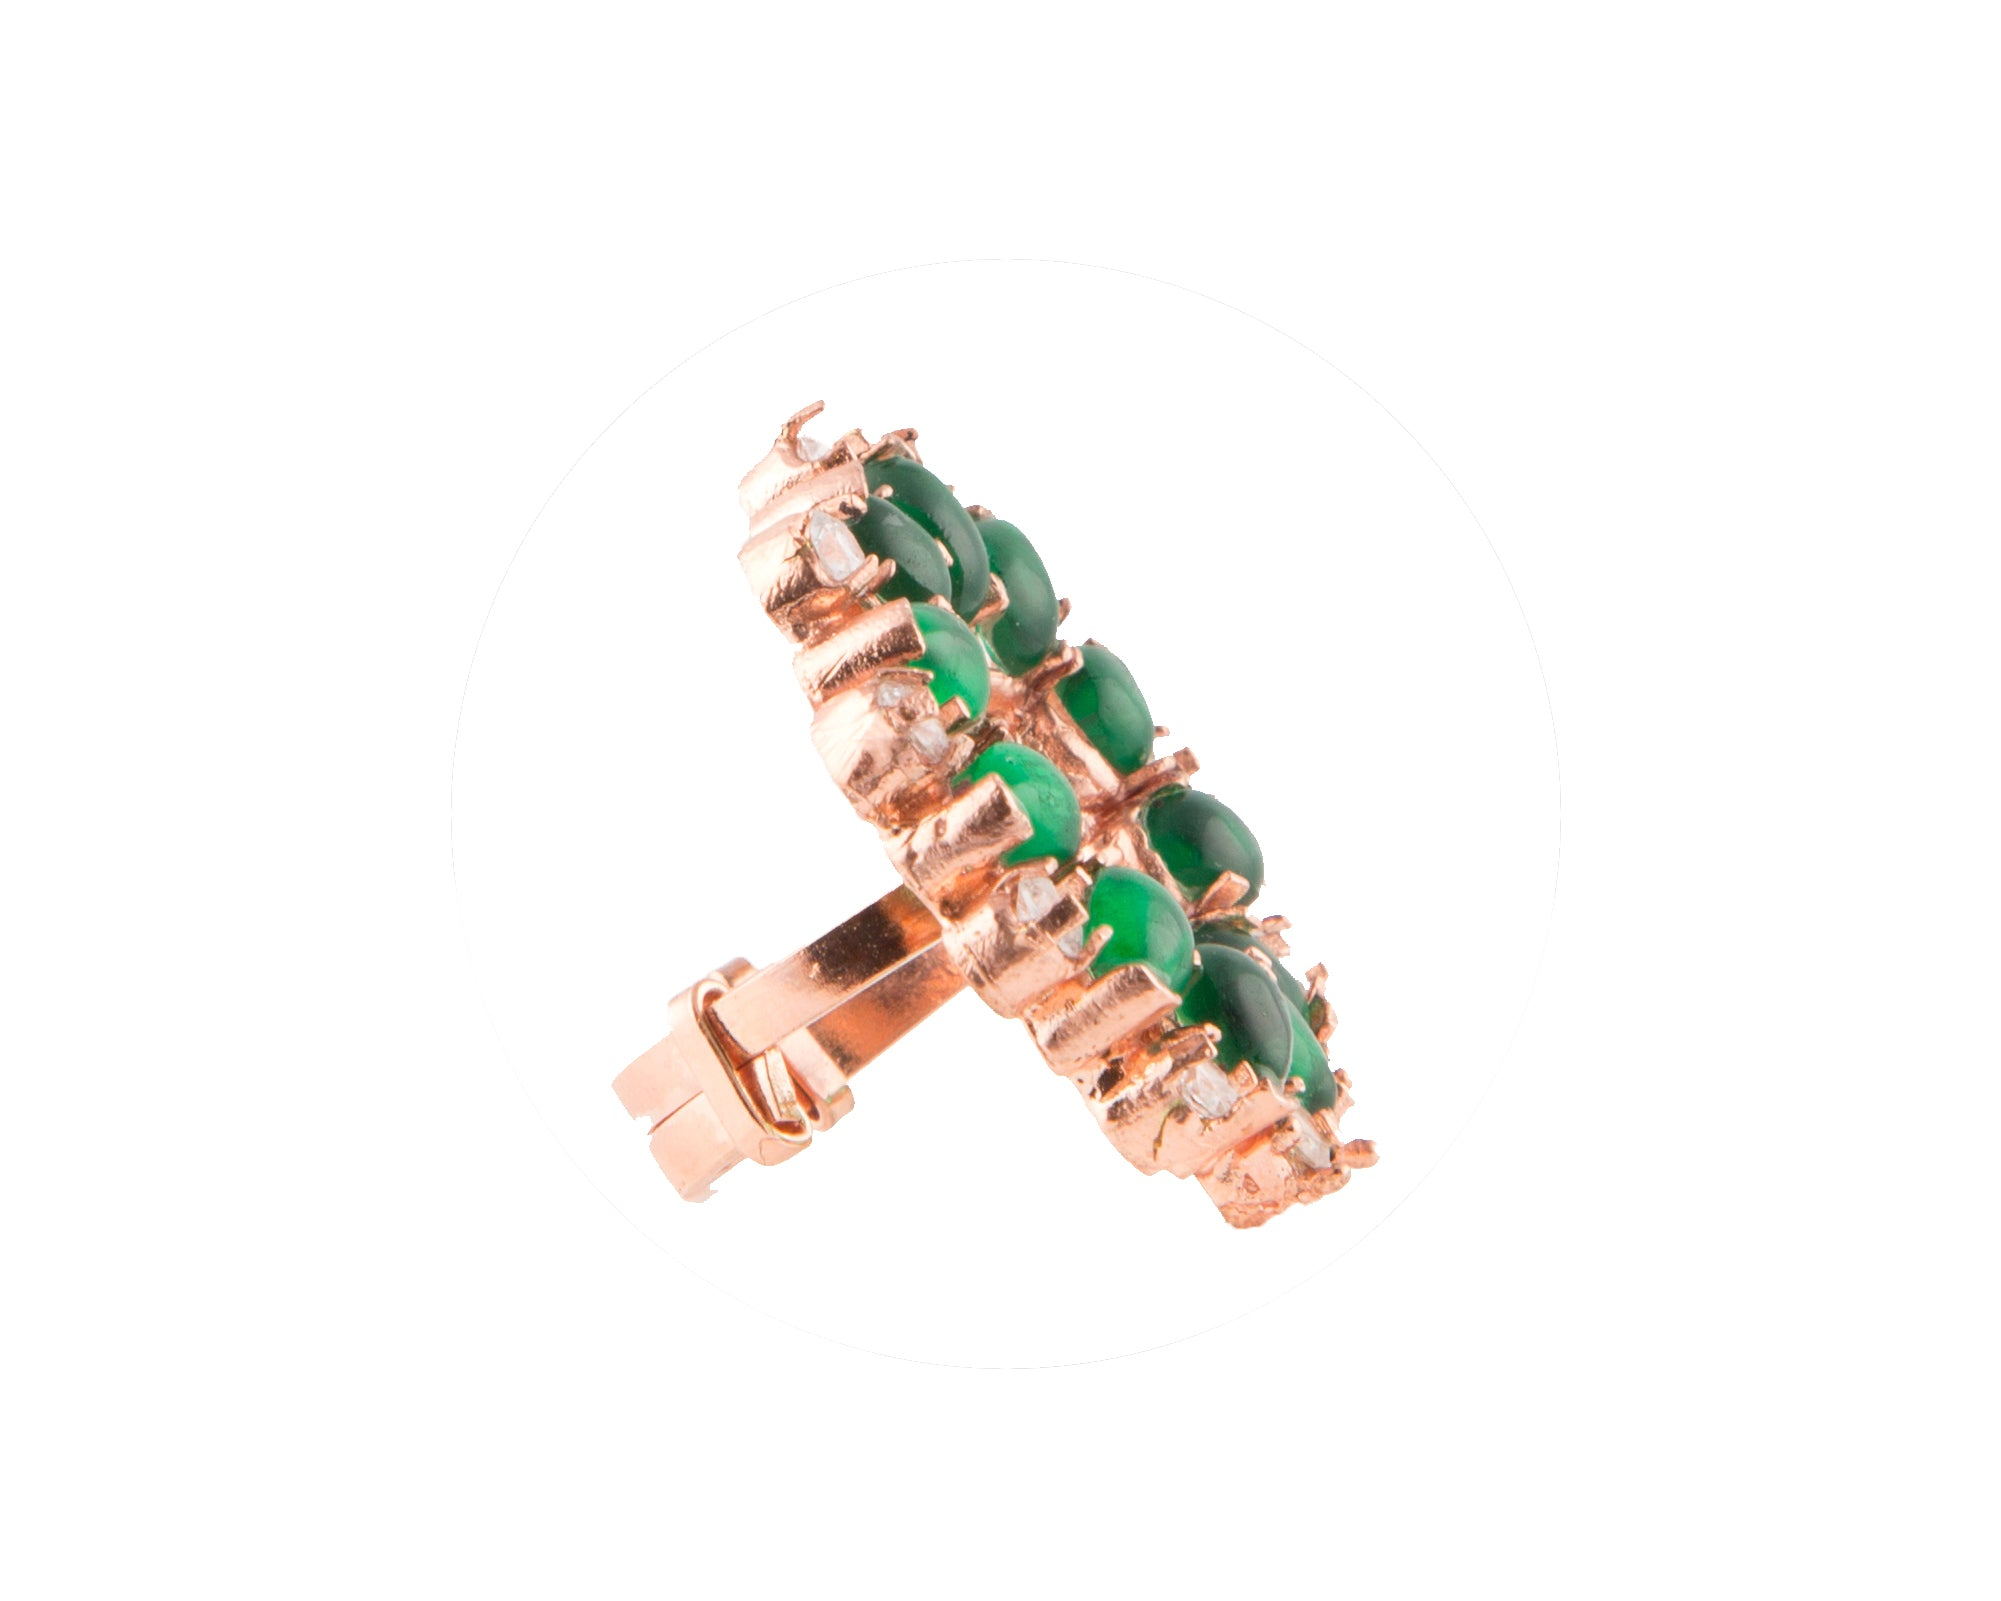 Semi-precious green garnet & white zirconia stone rose gold plated ring